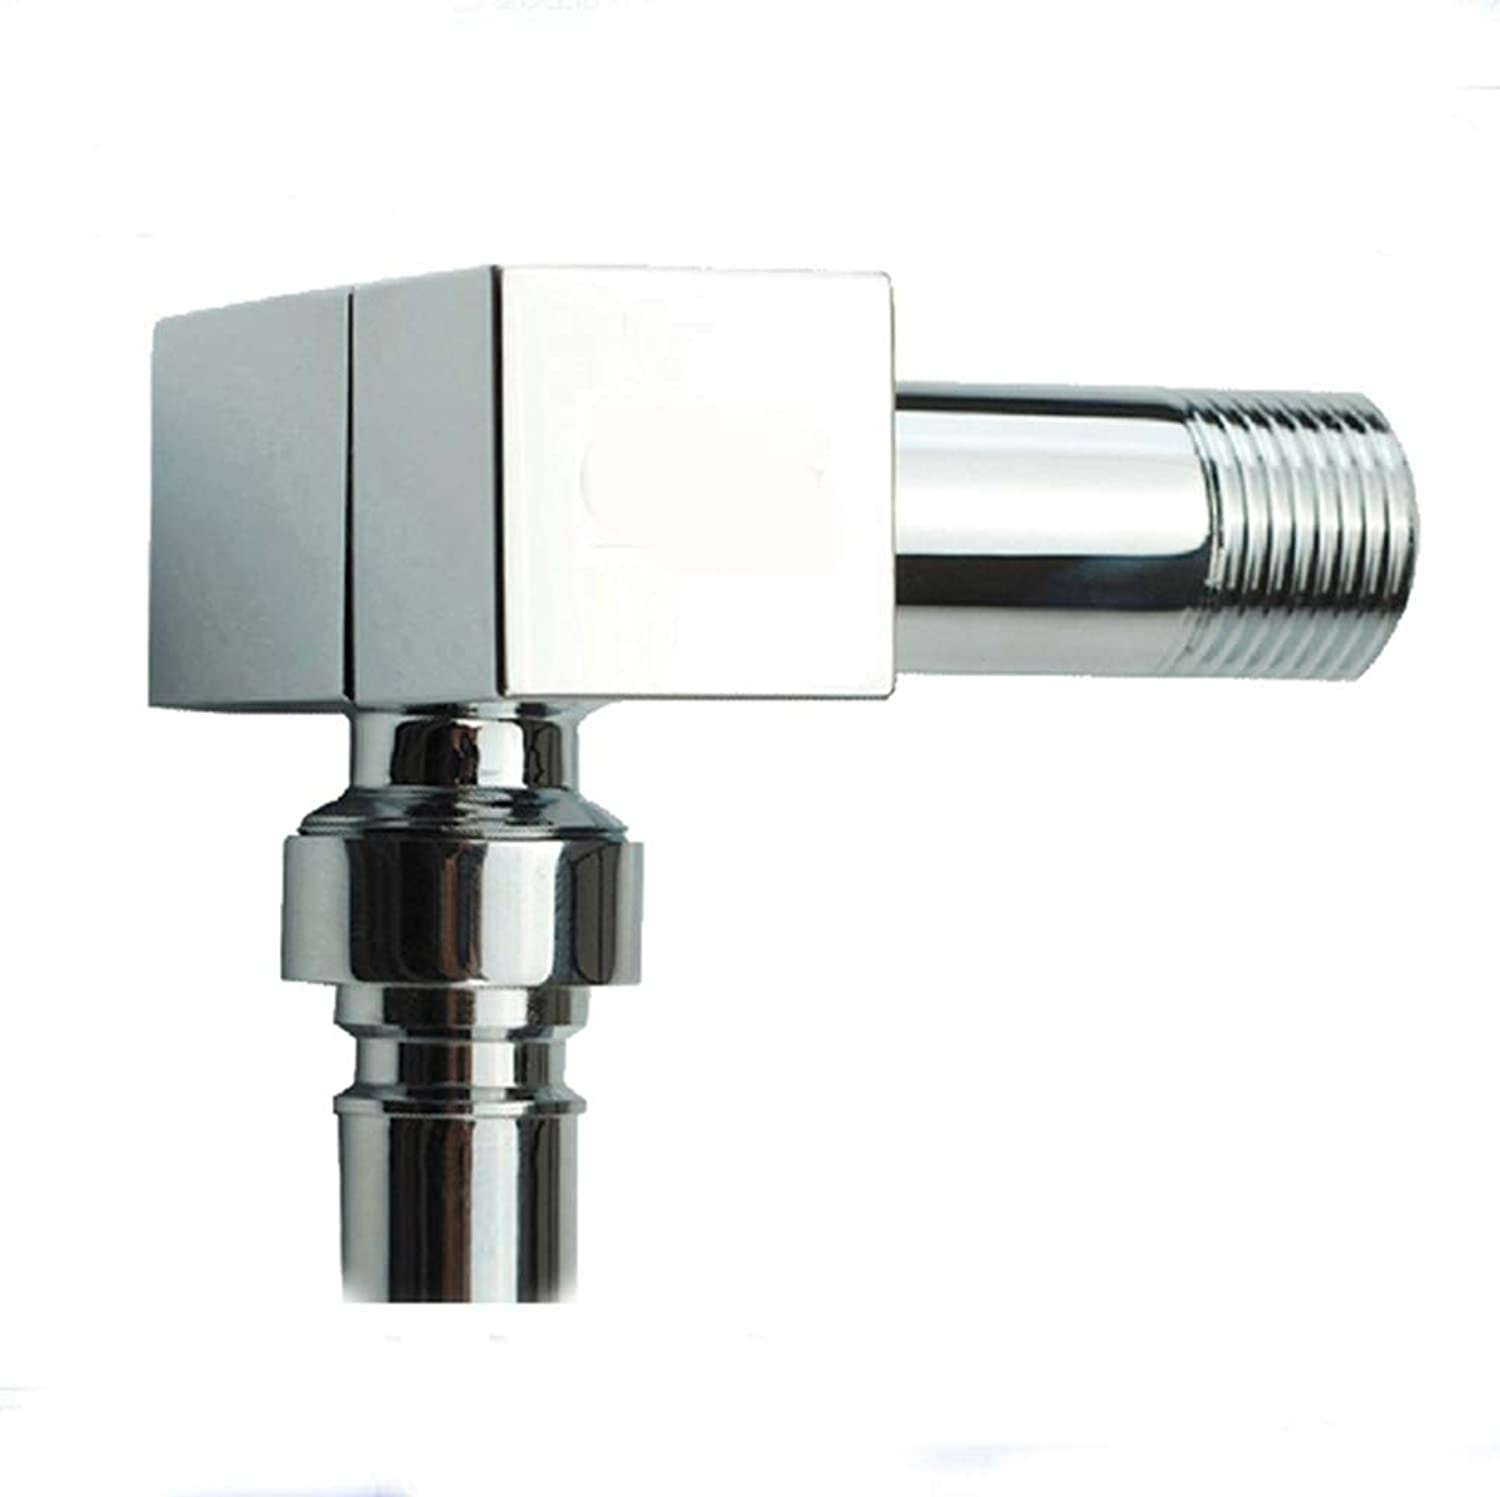 FZHLR Brass Handle Cold Water Faucet, Wall Mounted Basin Tap Bibcock Cold Faucet